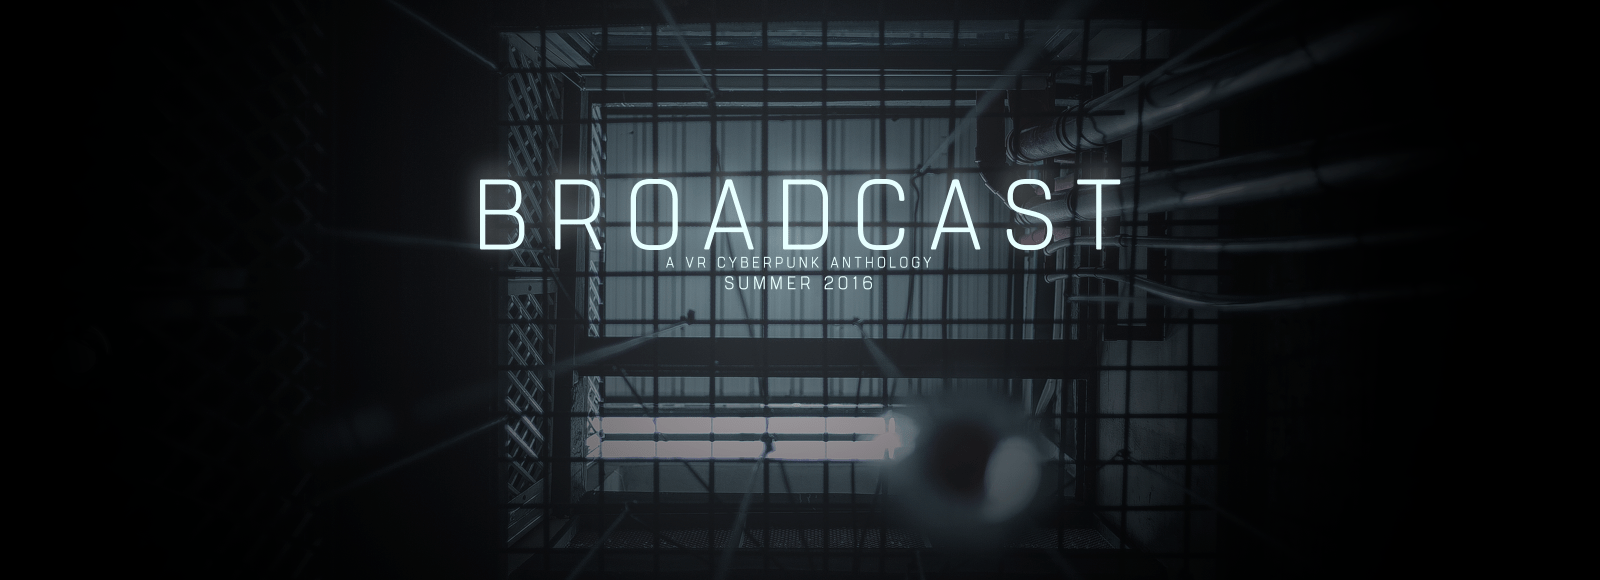 Clever Fox Announces VR Cyberpunk Series 'Broadcast' for Summer 2016